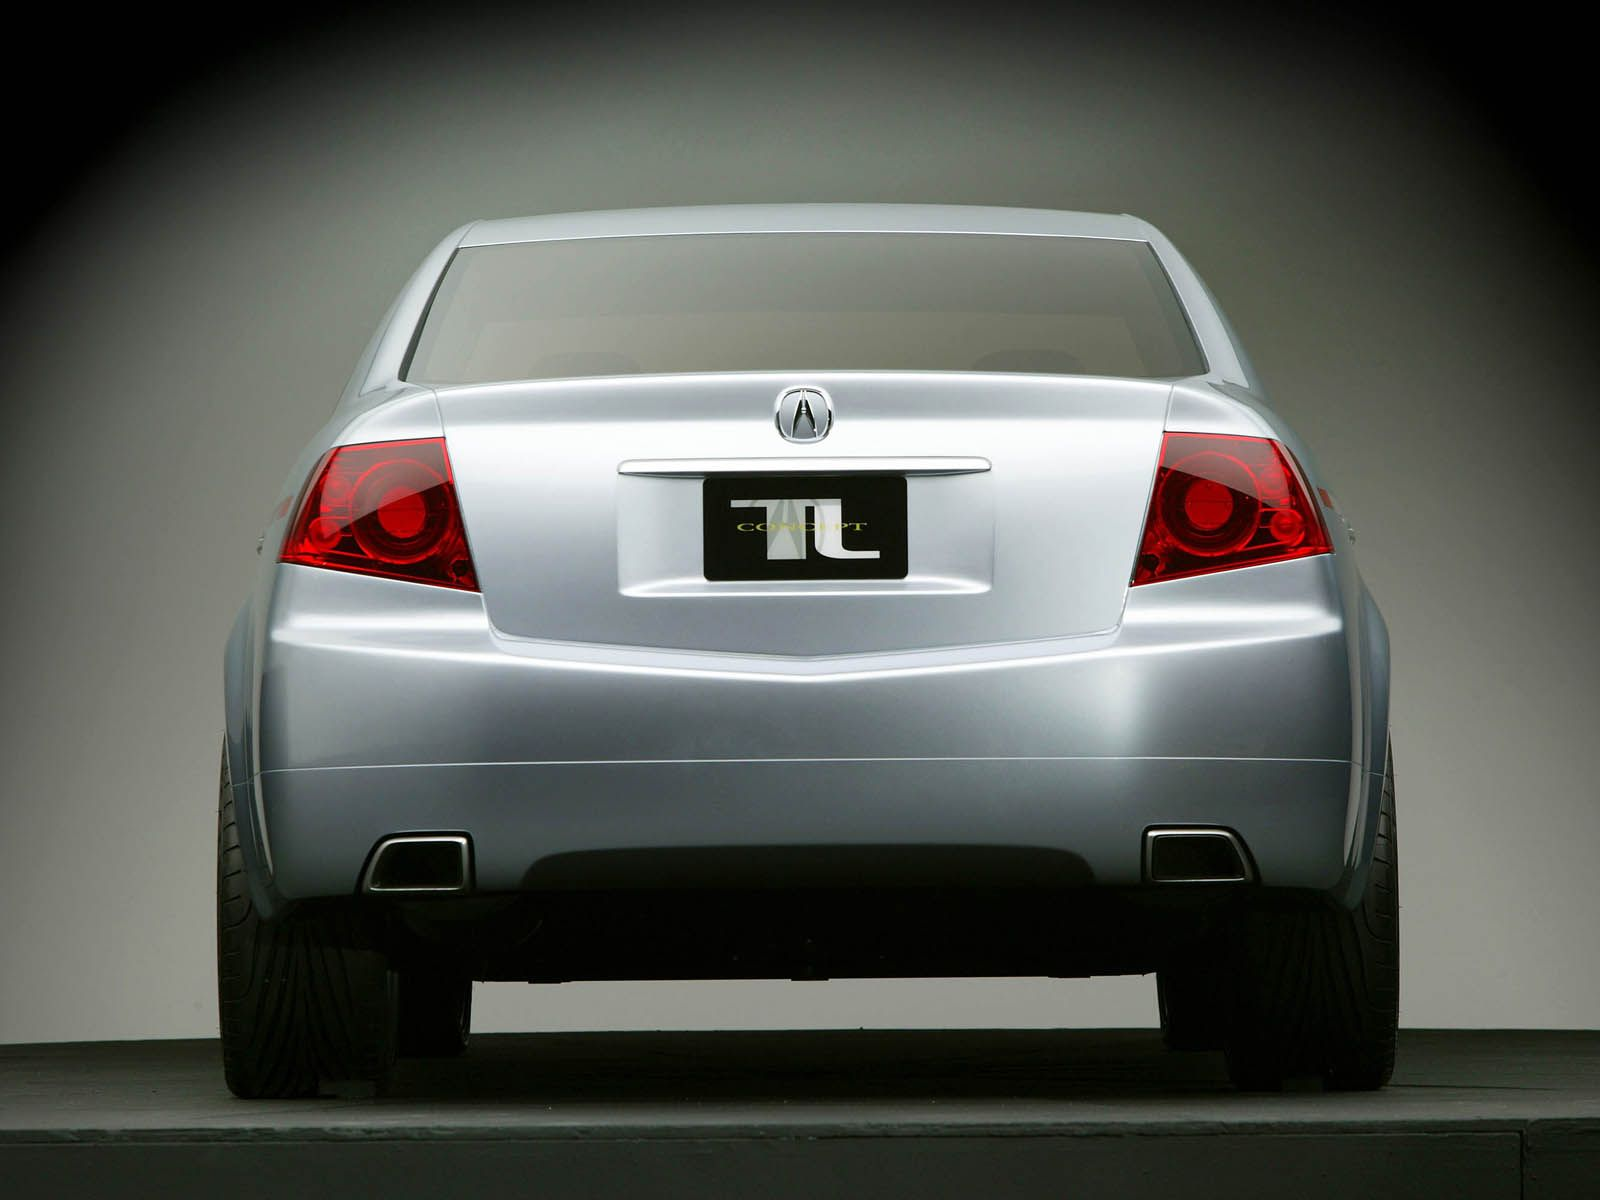 Back side view of awesome Acura TL Concept Car